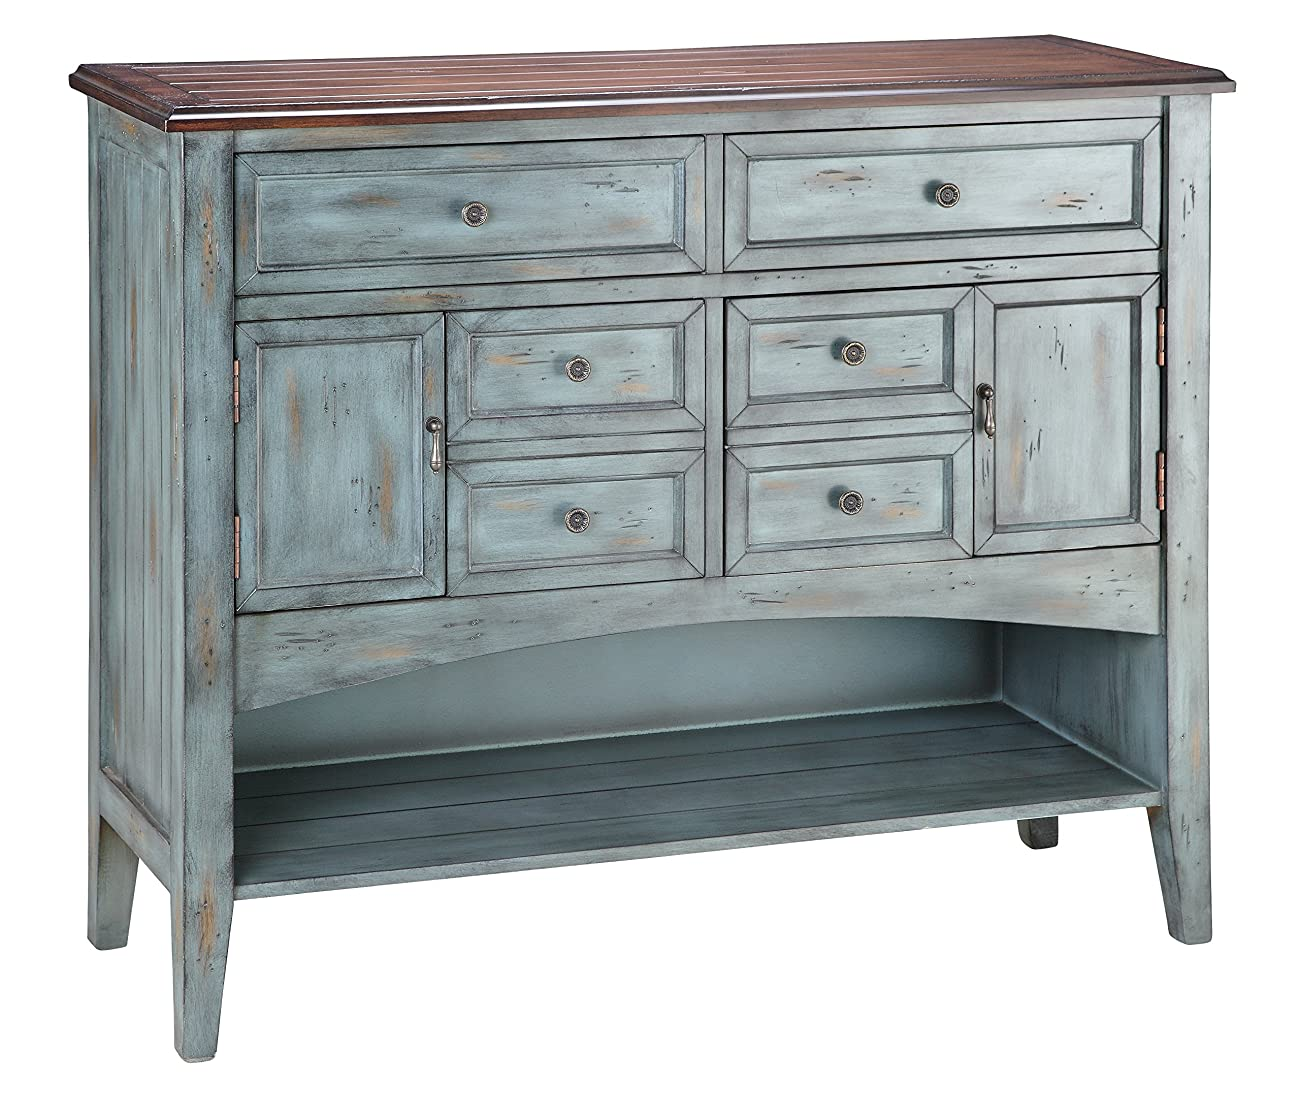 Stein World Furniture Hartford Buffet/Server, Distressed Moonstone Antique Blue/Wood Tone 0